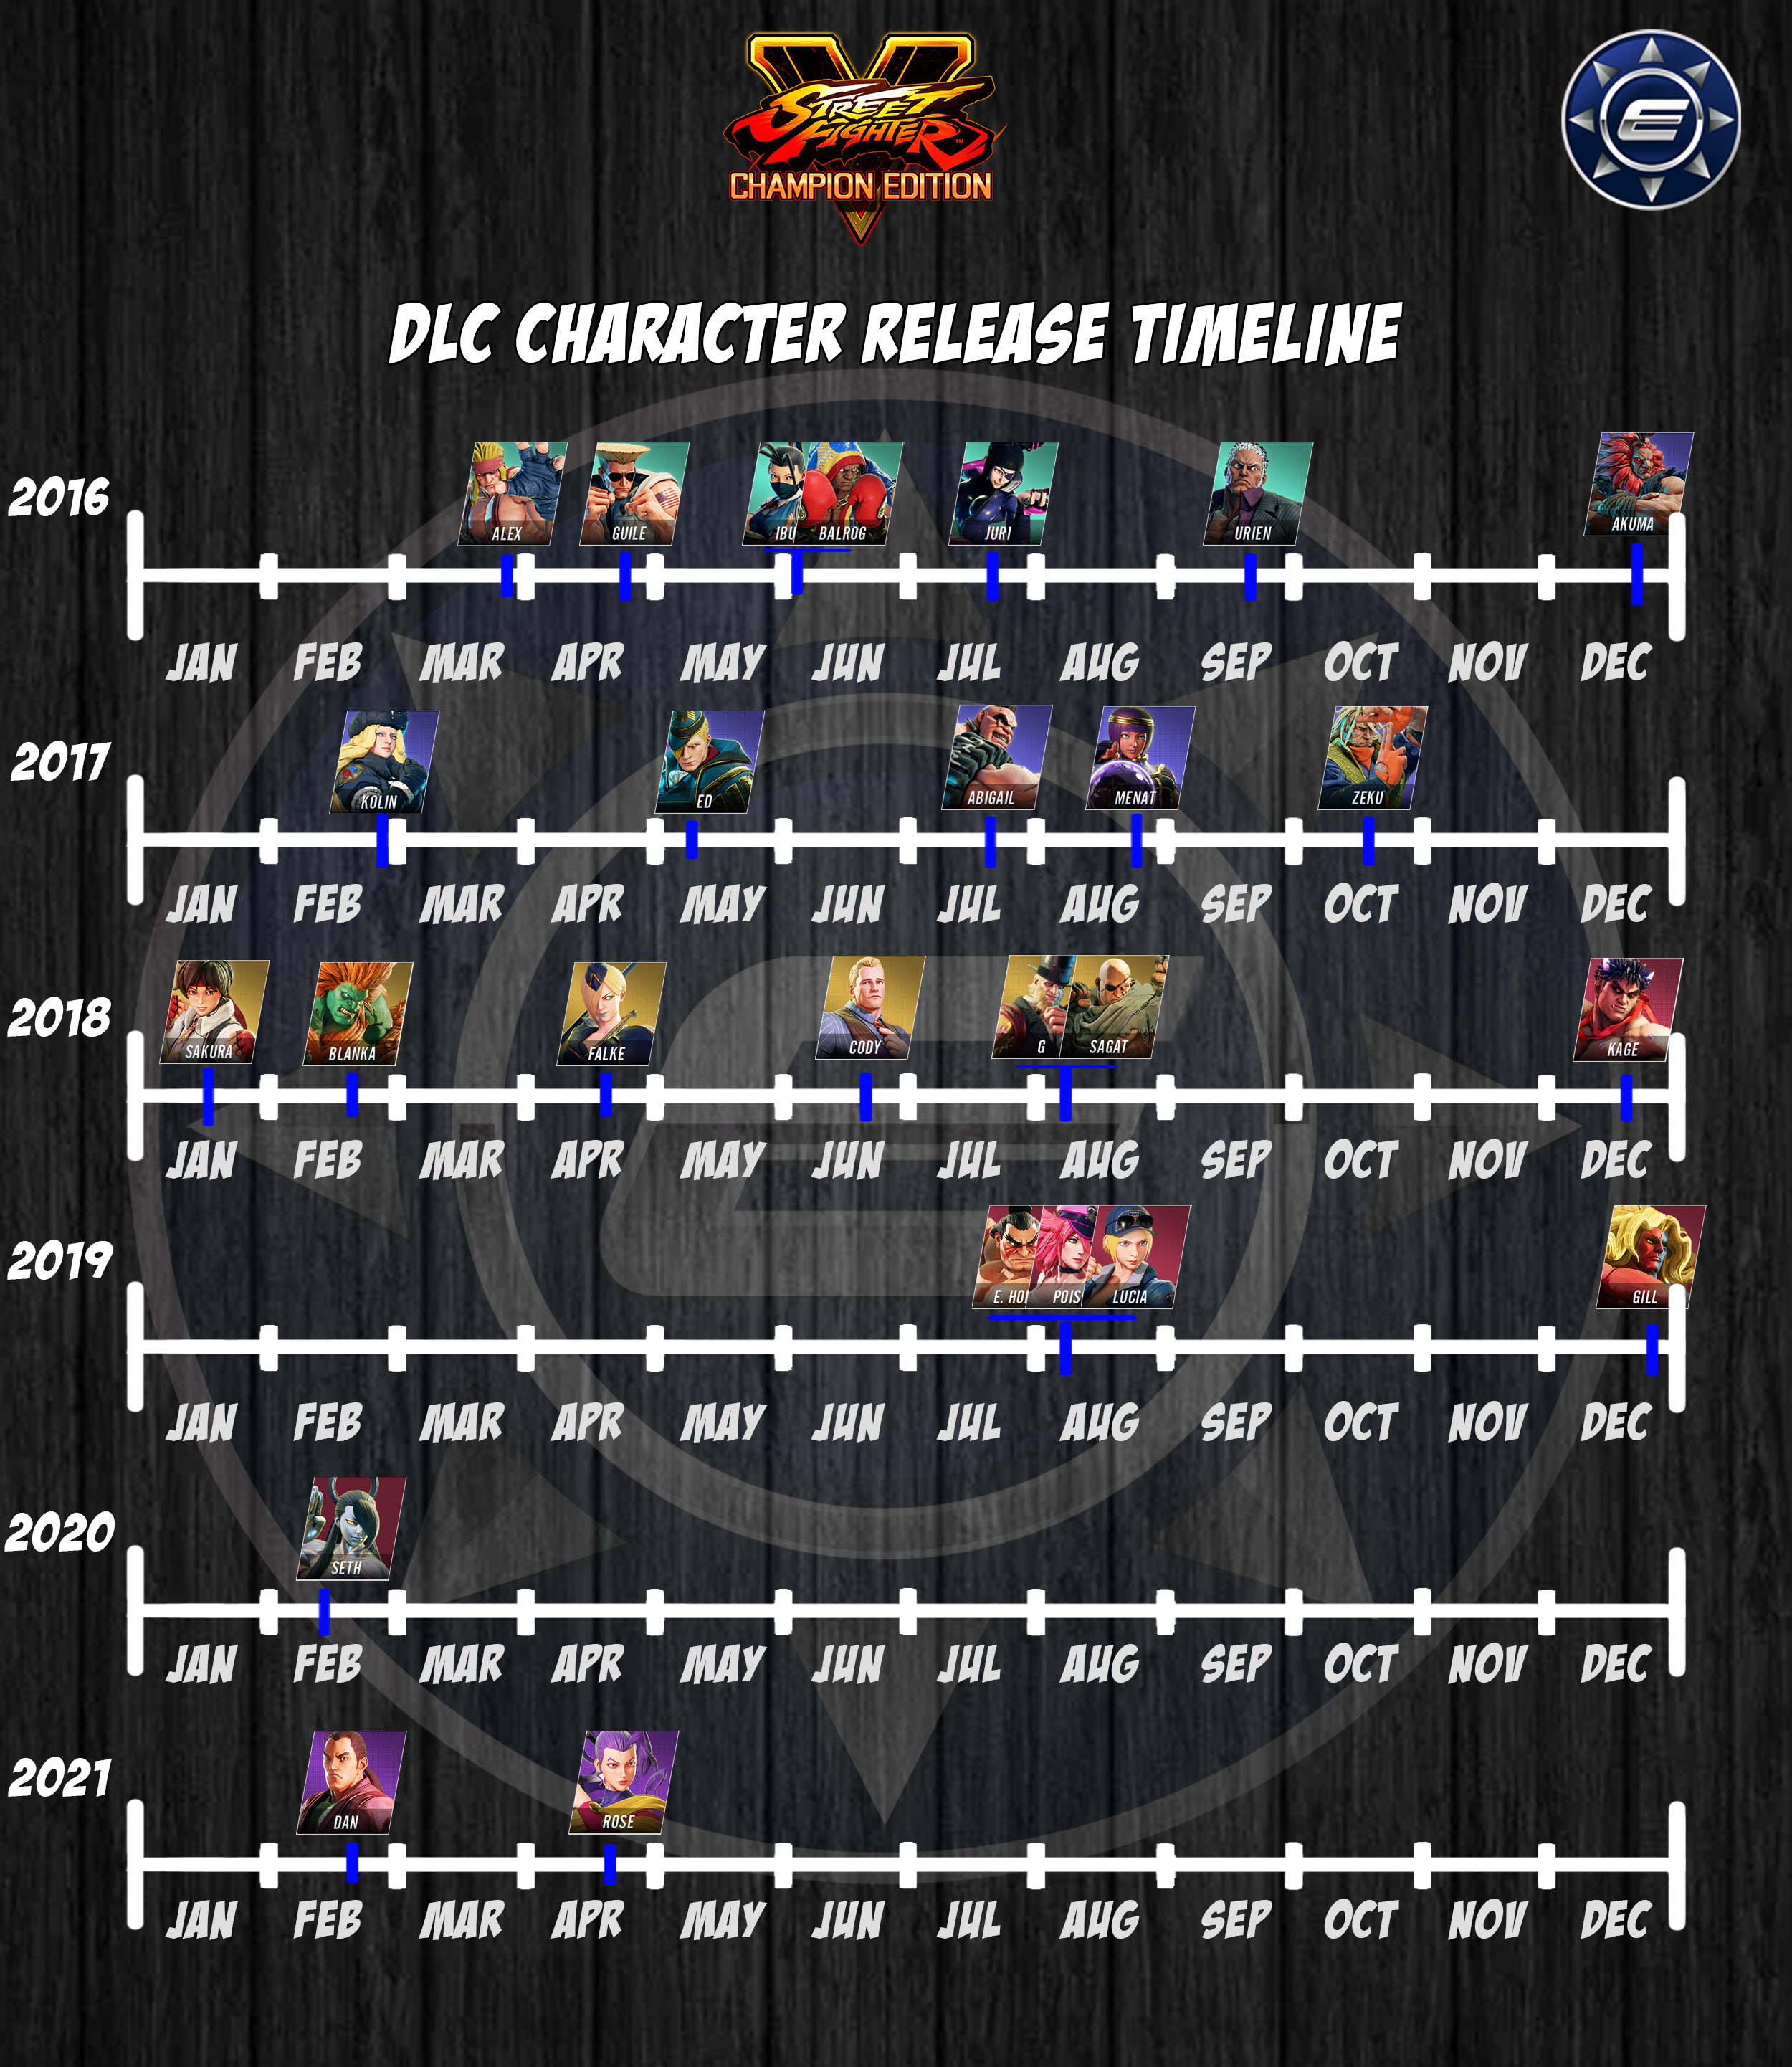 SF5 DLC Visual Timeline w Logo 1 out of 1 image gallery